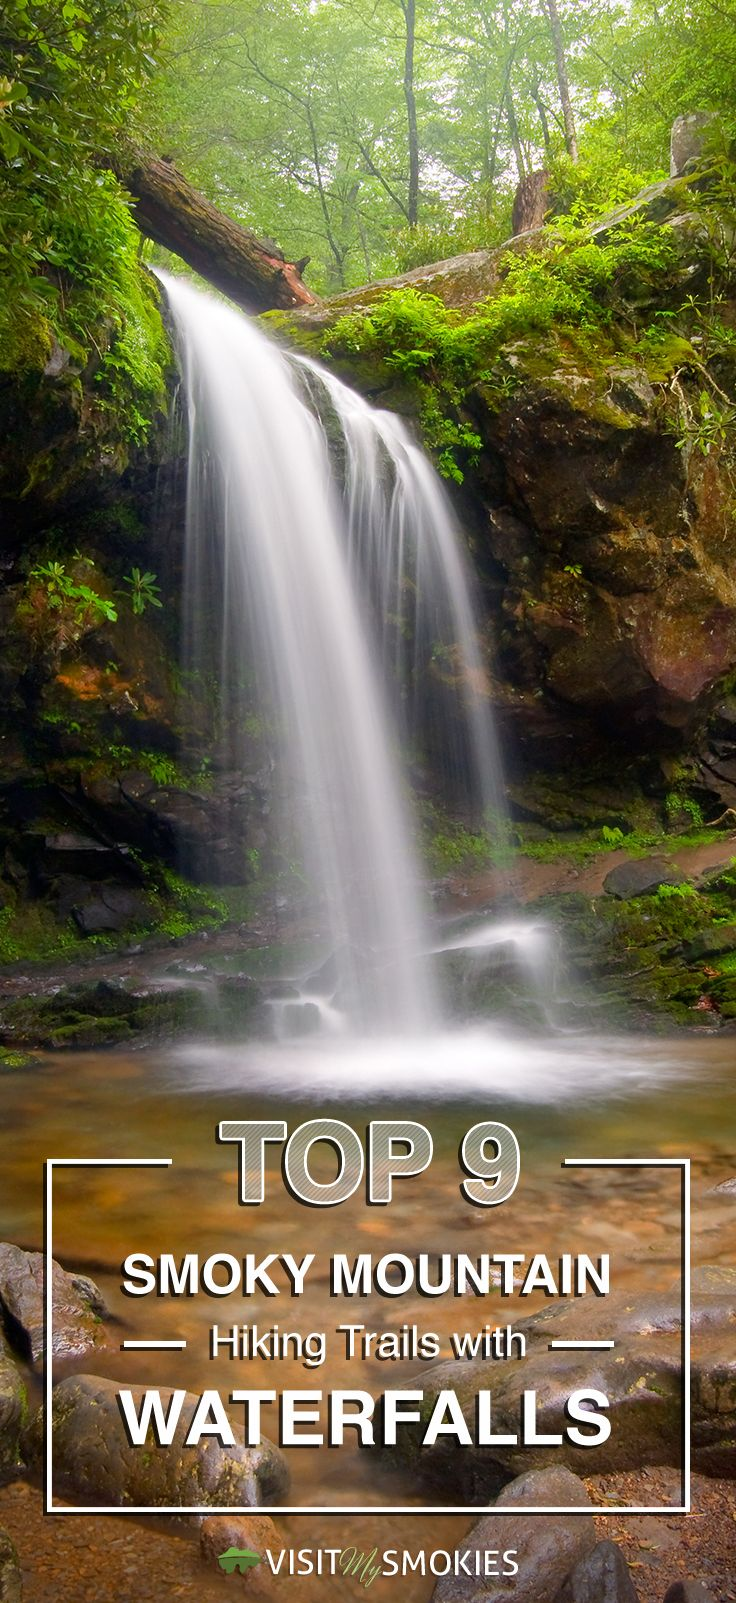 Top 9 Smoky Mountain Hiking Trails with Waterfalls                              …